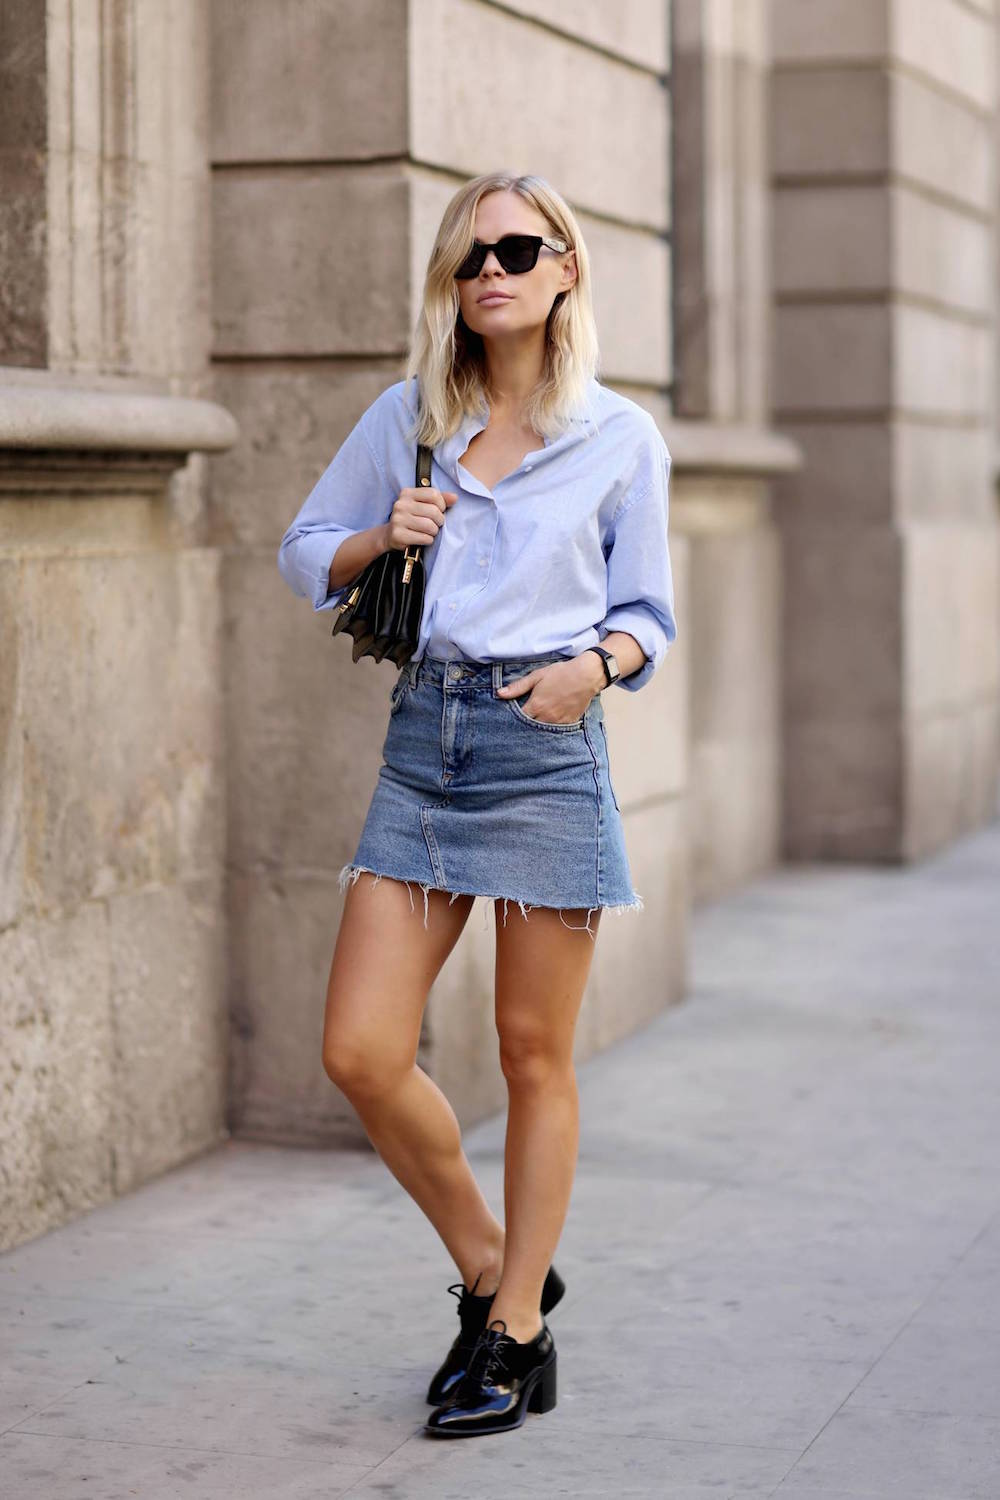 model in a mini denim skirt and blue shirt